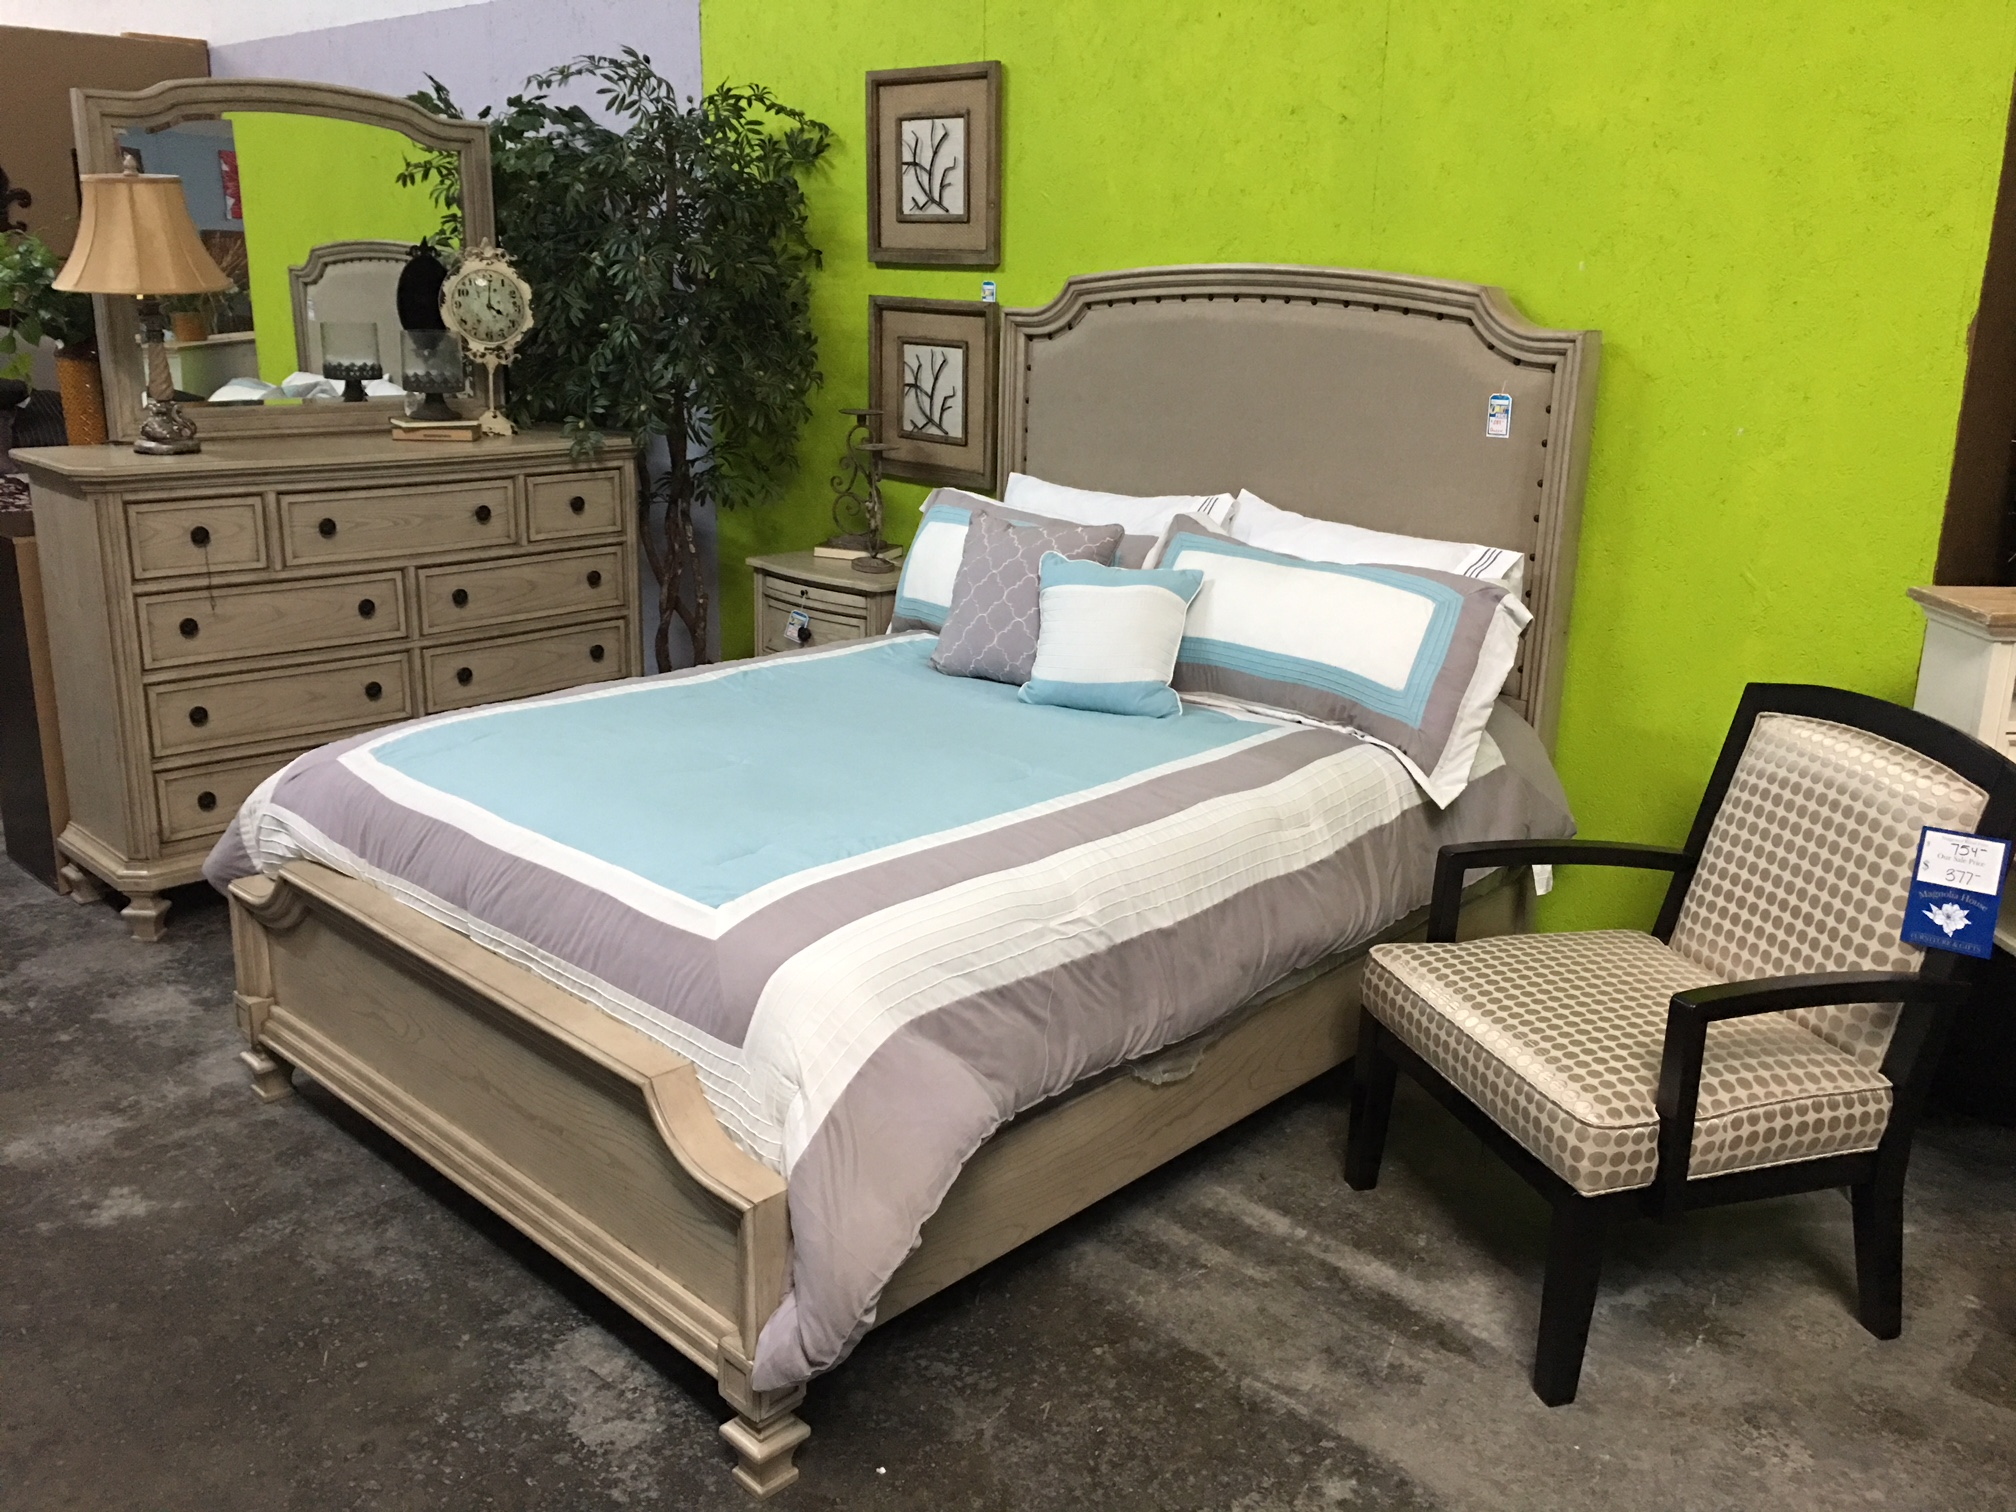 When You Want Excellence In Service And Products, Visit Magnolia House Of  Furniture. Contact Our Friendly Staff Today With Any Questions At  229 244 0055.